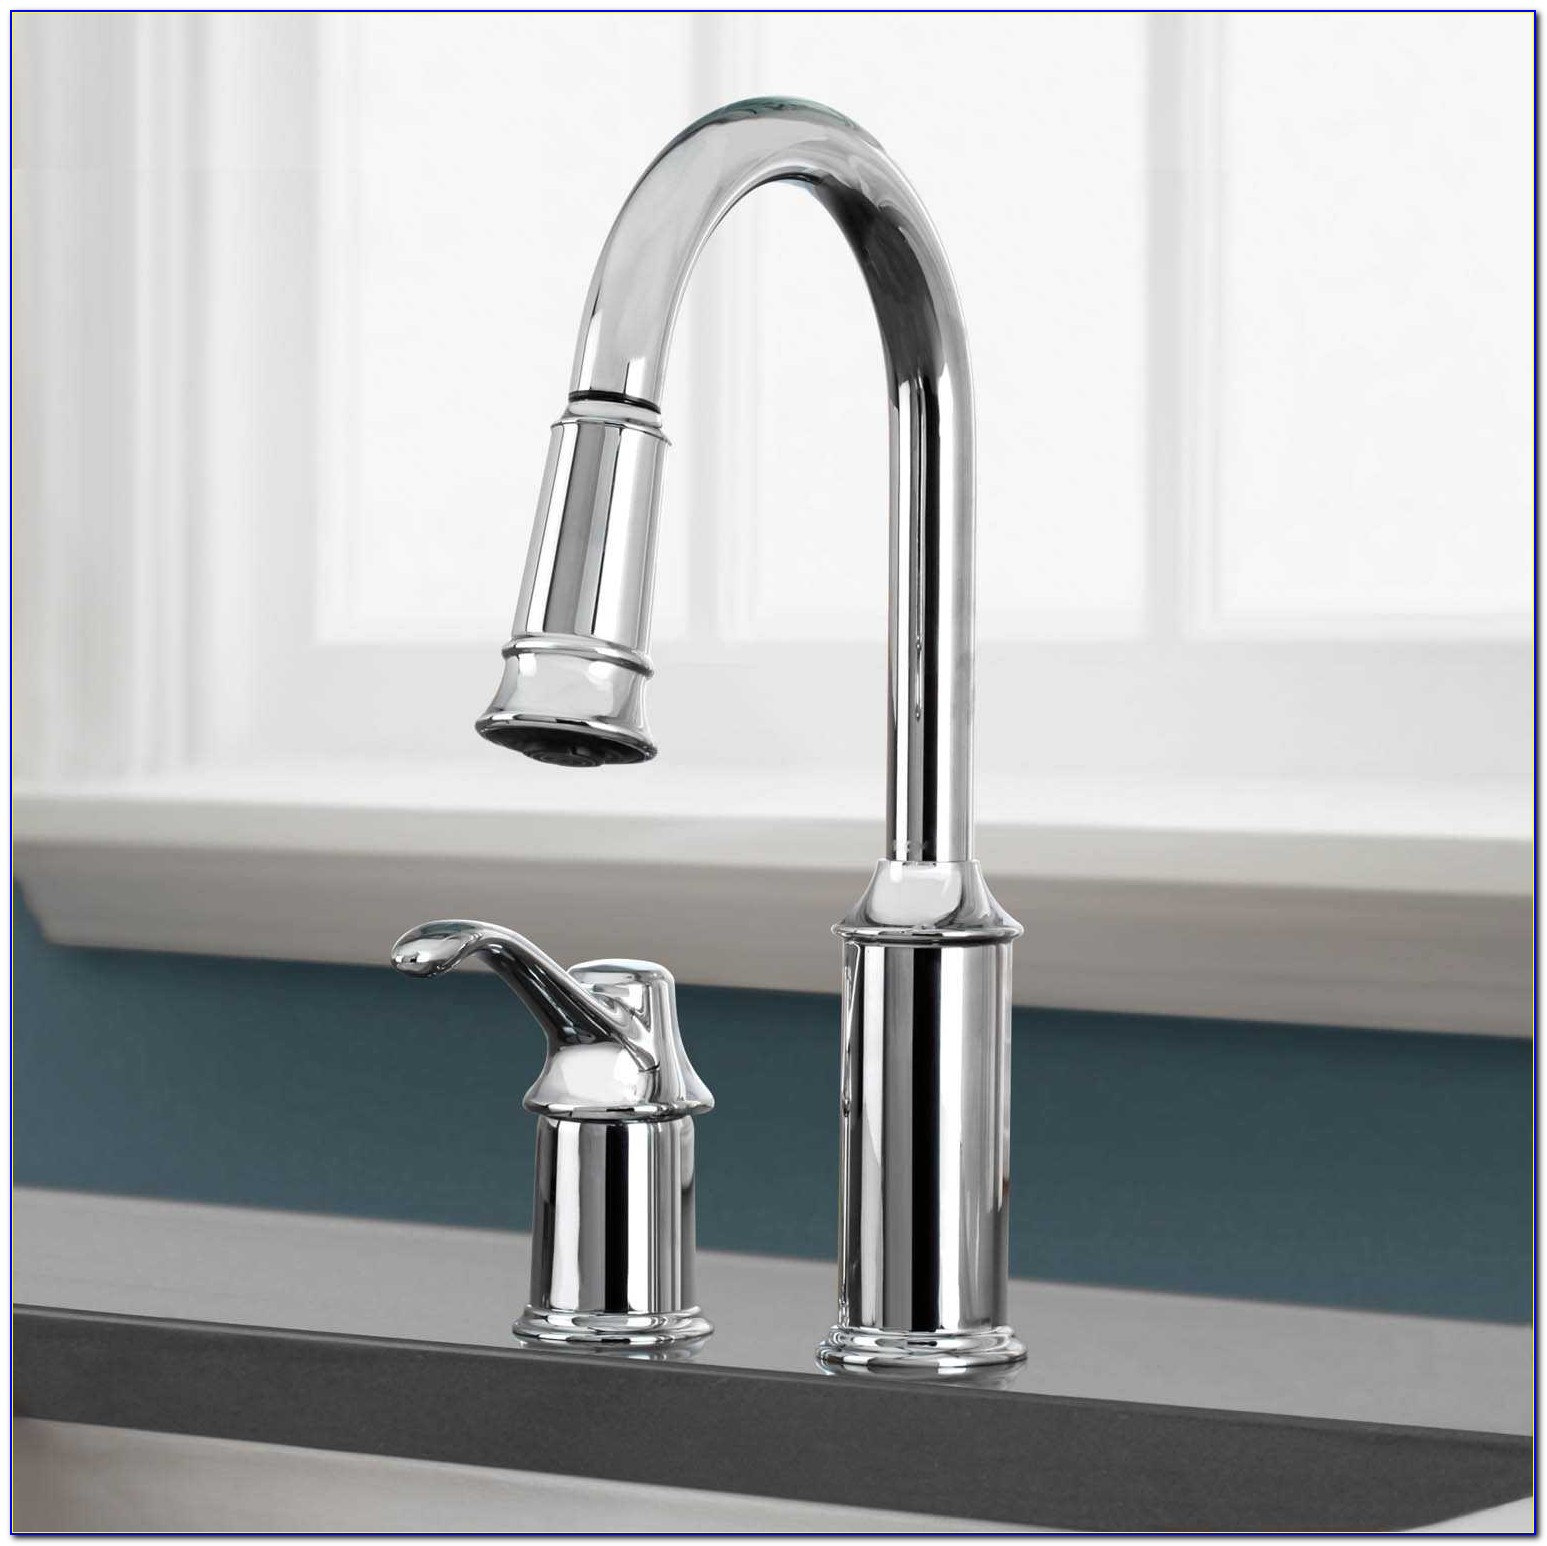 Grohe Concetto Kitchen Faucet Installation Video